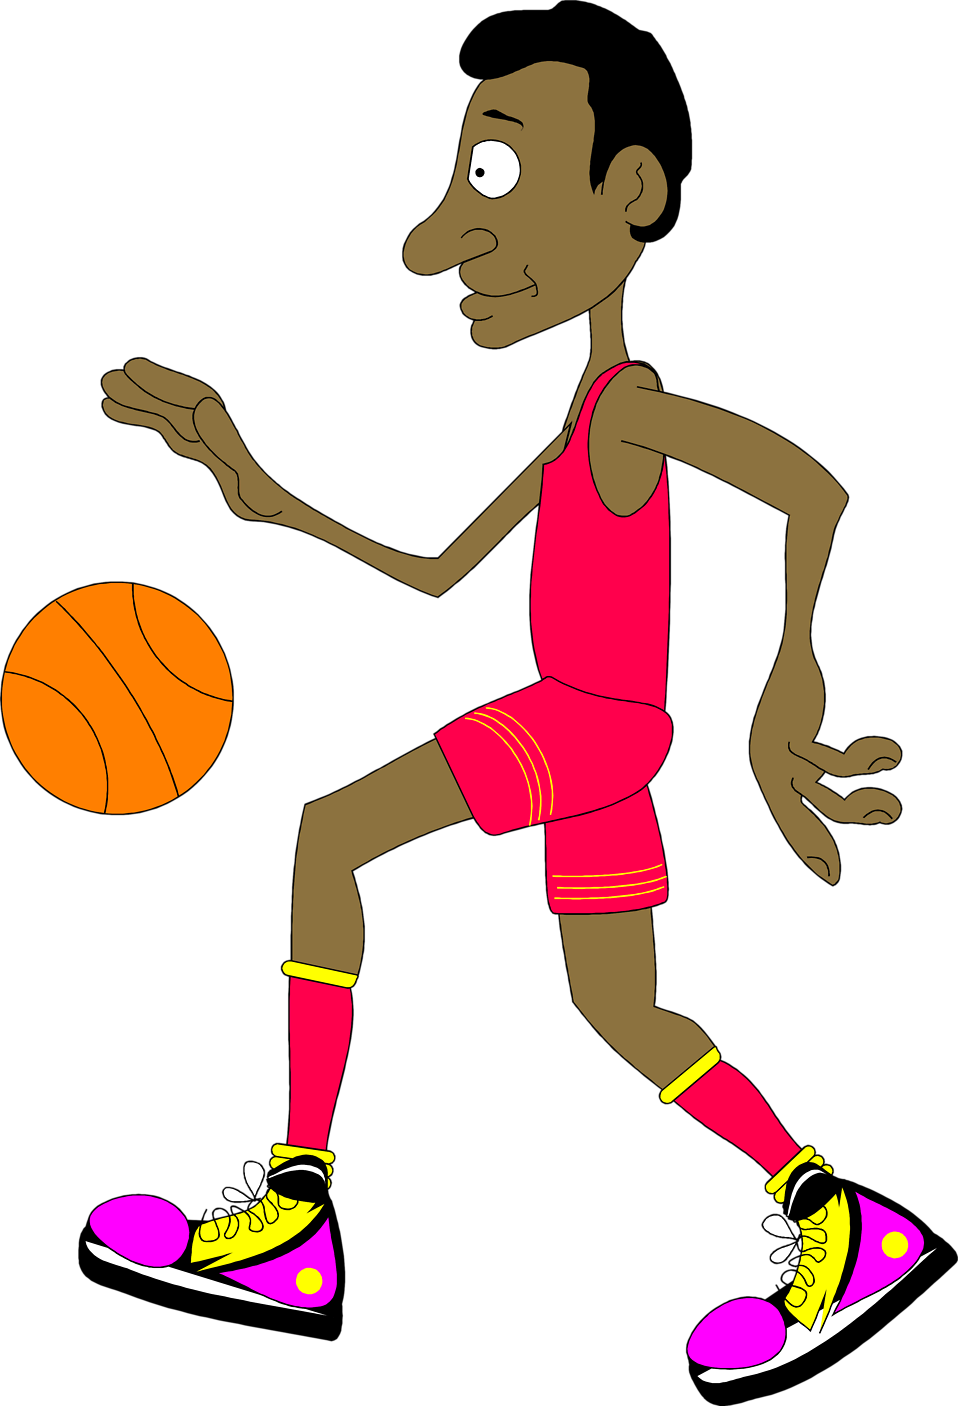 Man playing basketball clipart svg Basketball | Free Stock Photo | Illustration of a basketball player ... svg